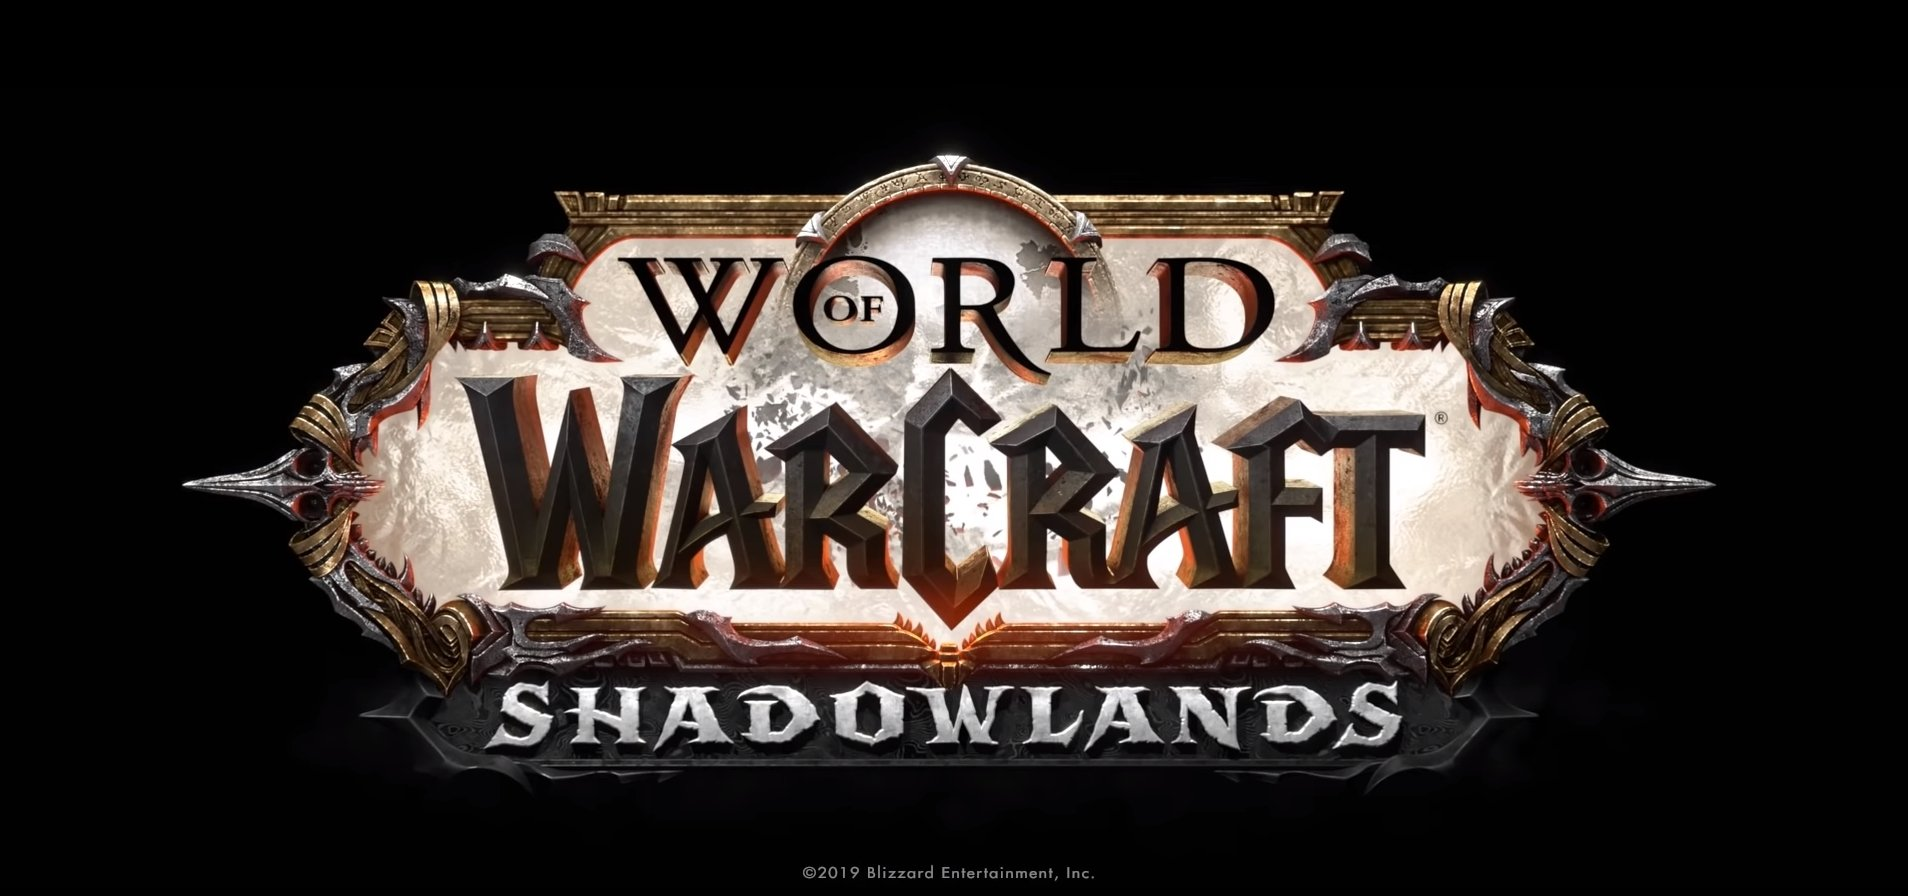 Popular Streamer And Mental Health Advocate DesMephisto Has Been Given An Honorary Item In World Of Warcraft: Shadowlands!